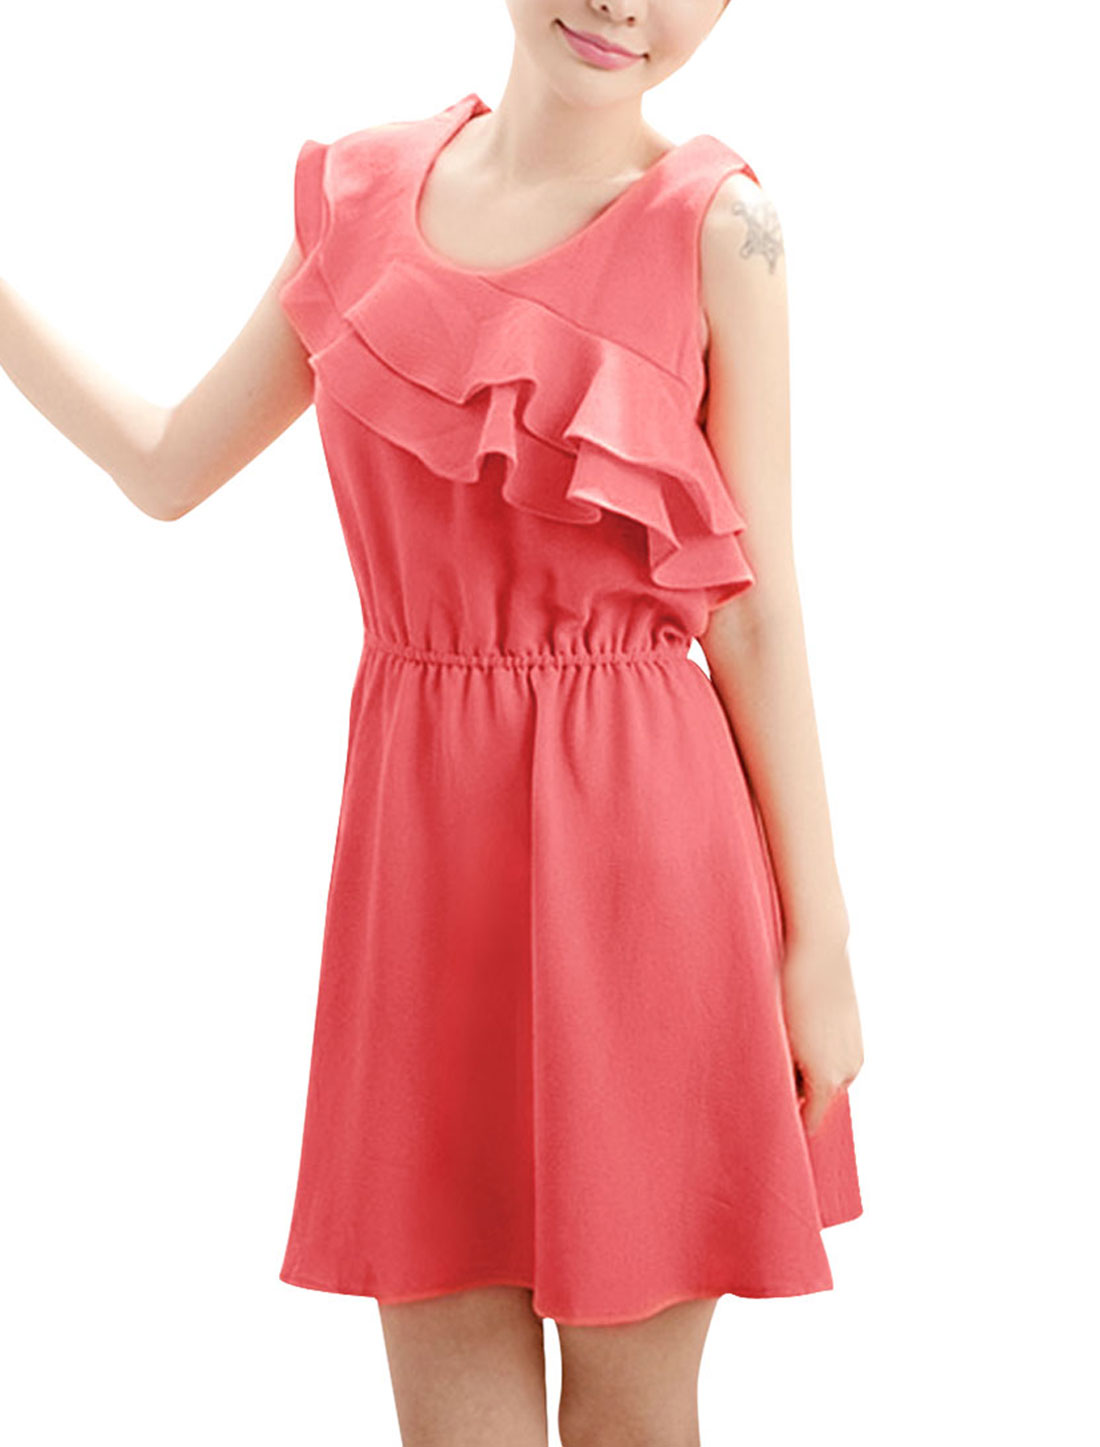 Women Stylish Coral Pink Elastic Waist Tiered Ruffles Decor Mini Dress S